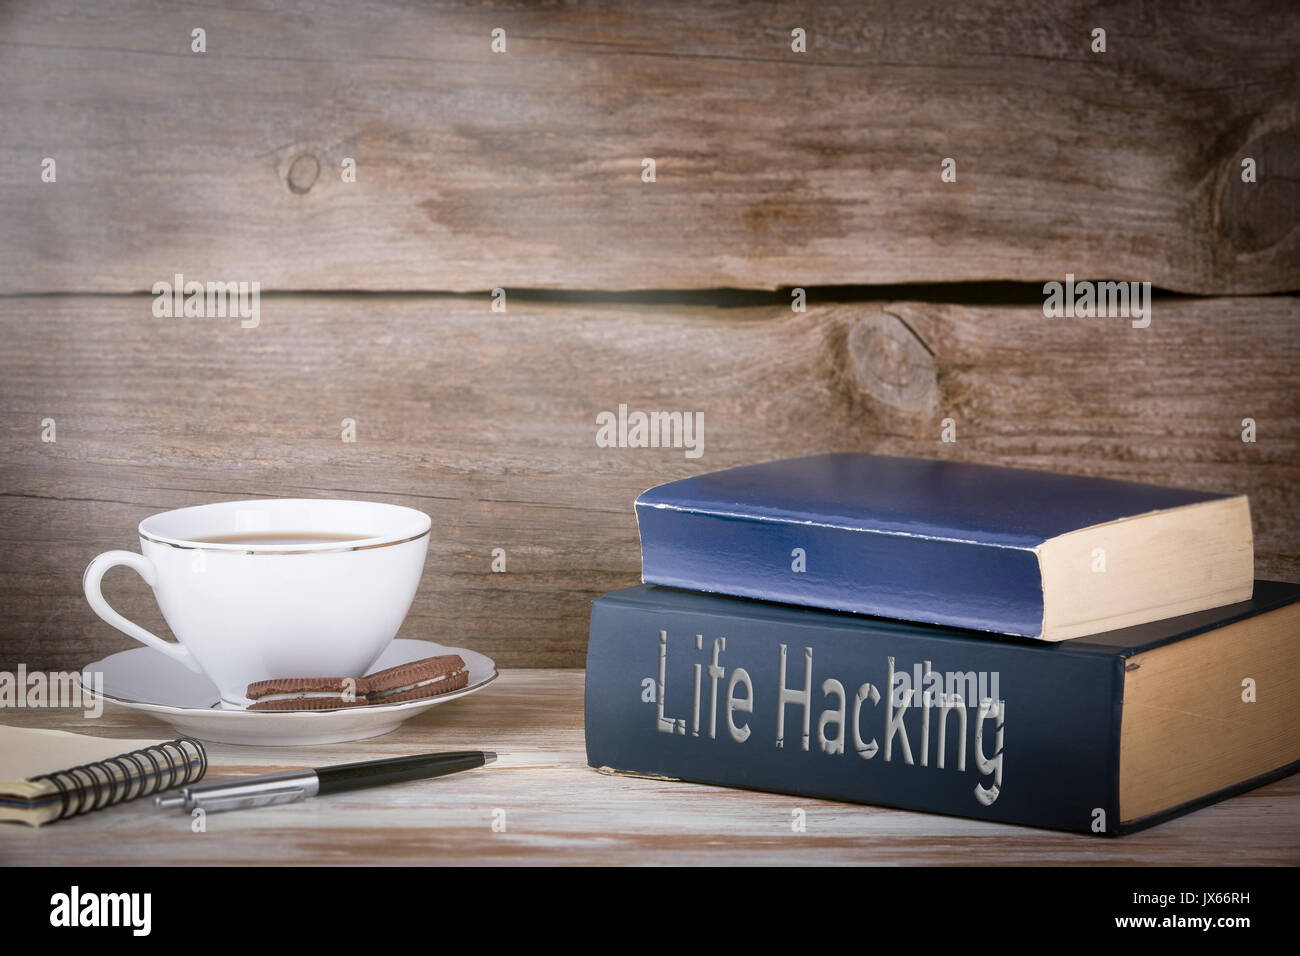 Life Hacking. Stack of books on wooden desk. - Stock Image